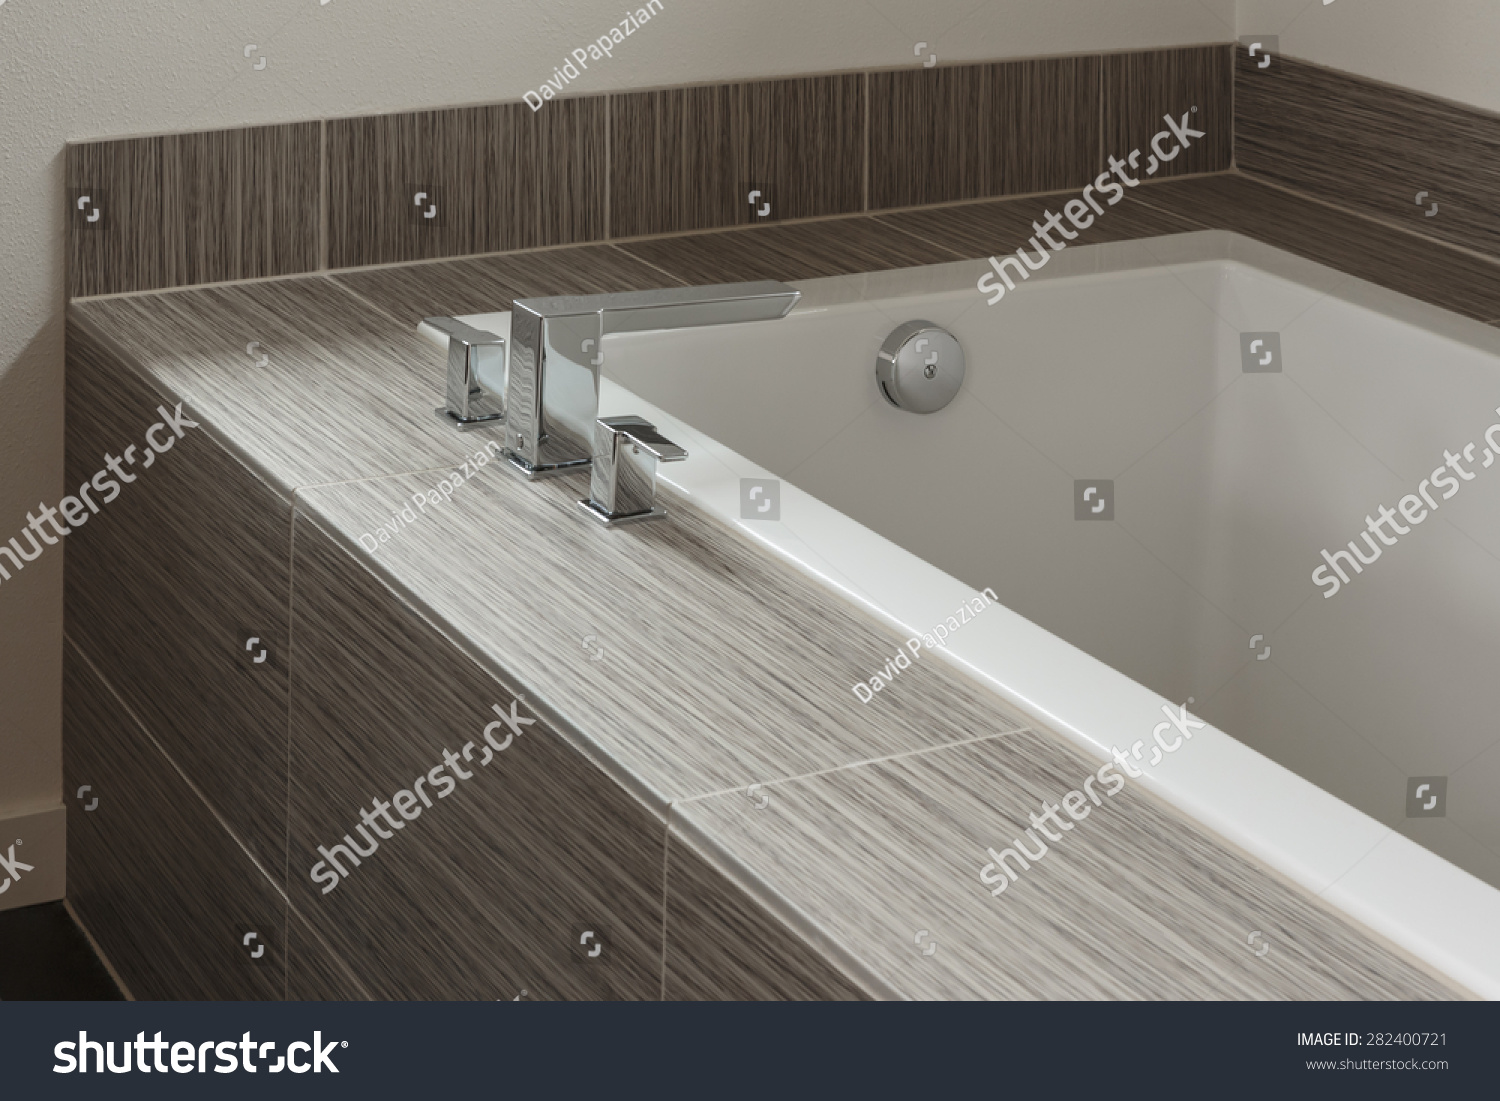 Modern Bathtub Tile Trim Stock Photo (Edit Now) 282400721 - Shutterstock